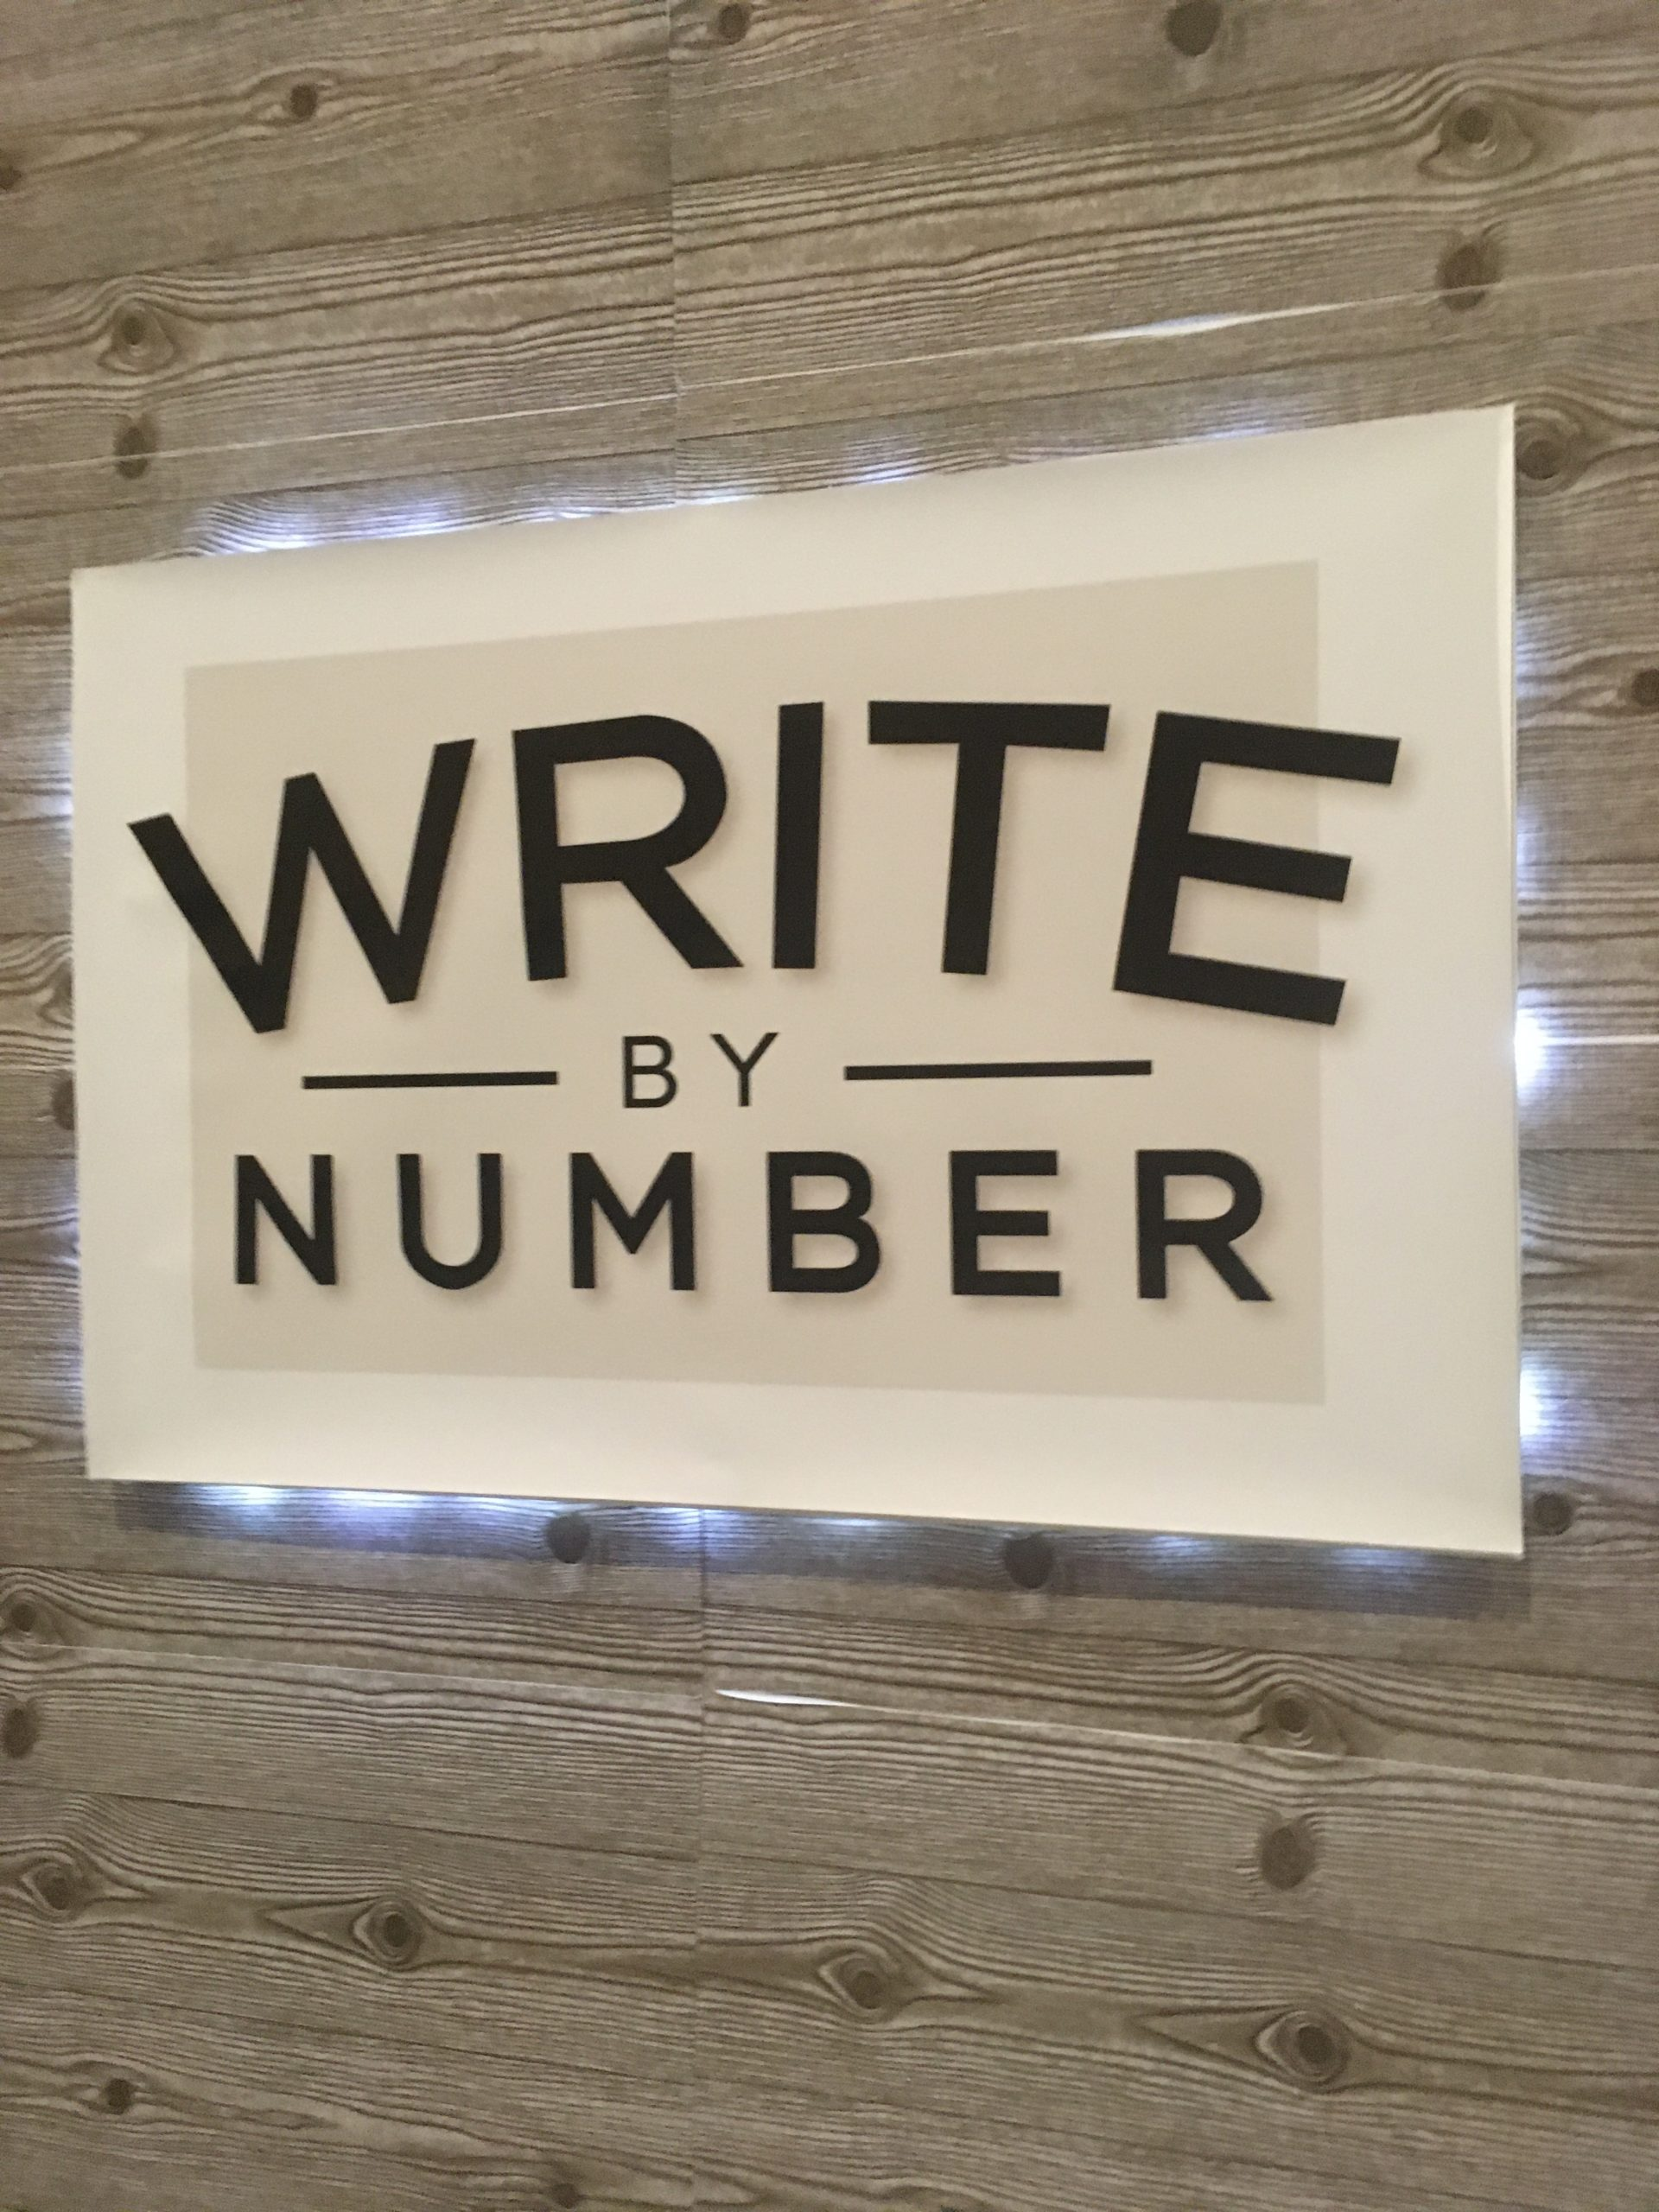 Write by Number exhibit booth sign